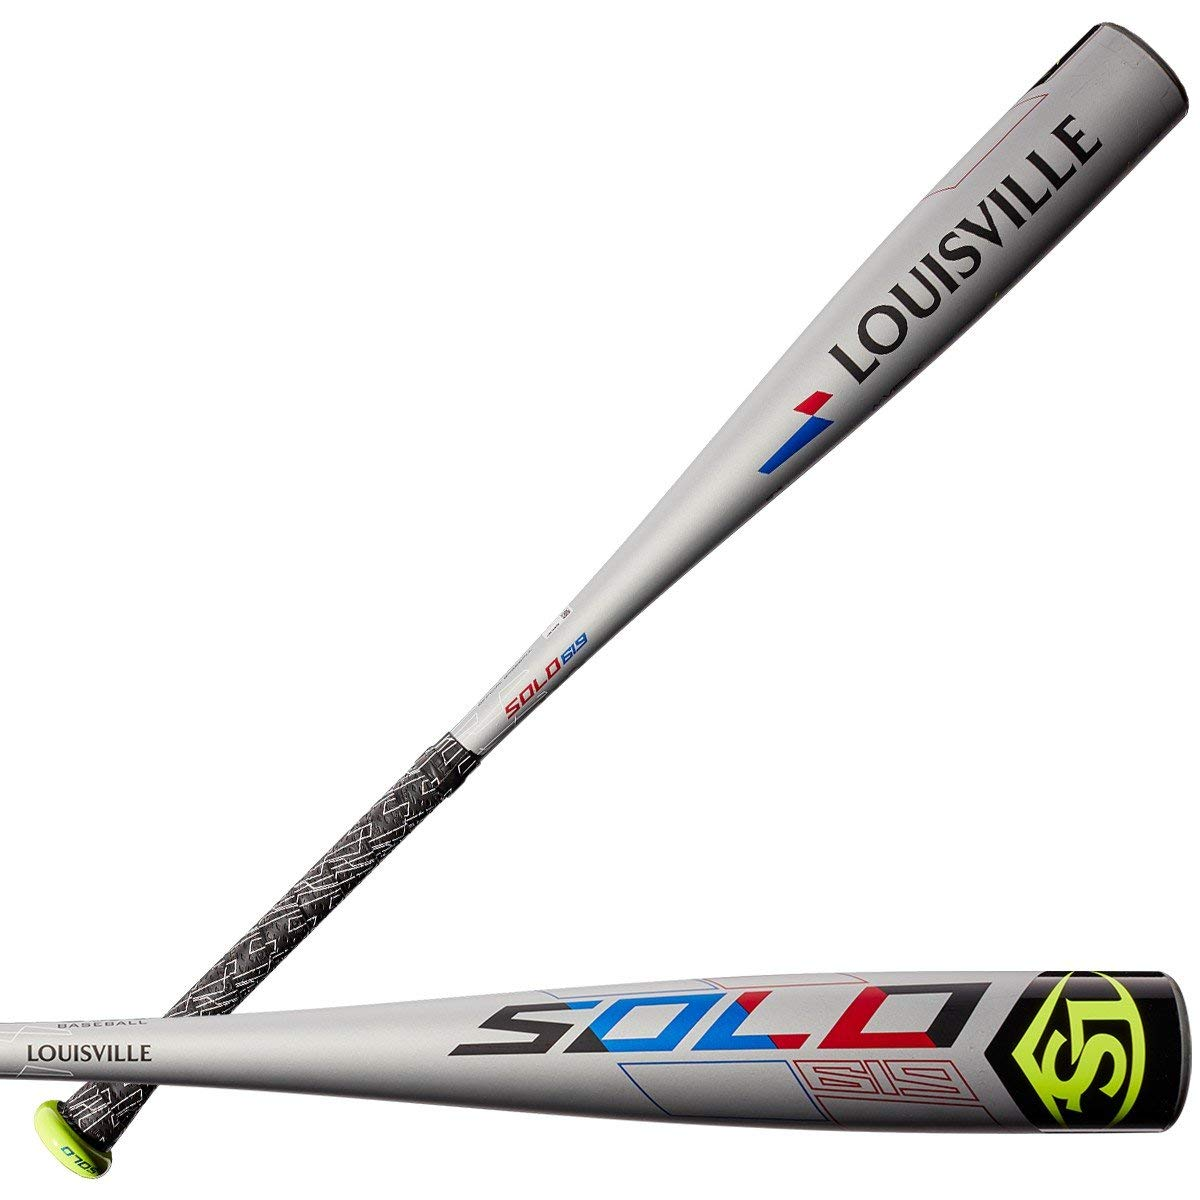 louisville-slugger-2019-solo-619-11-usa-baseball-bat-29-inch-18-oz WTLUBS619B1129  887768730024 Meets USA bat standard; approved for play in little League Baseball